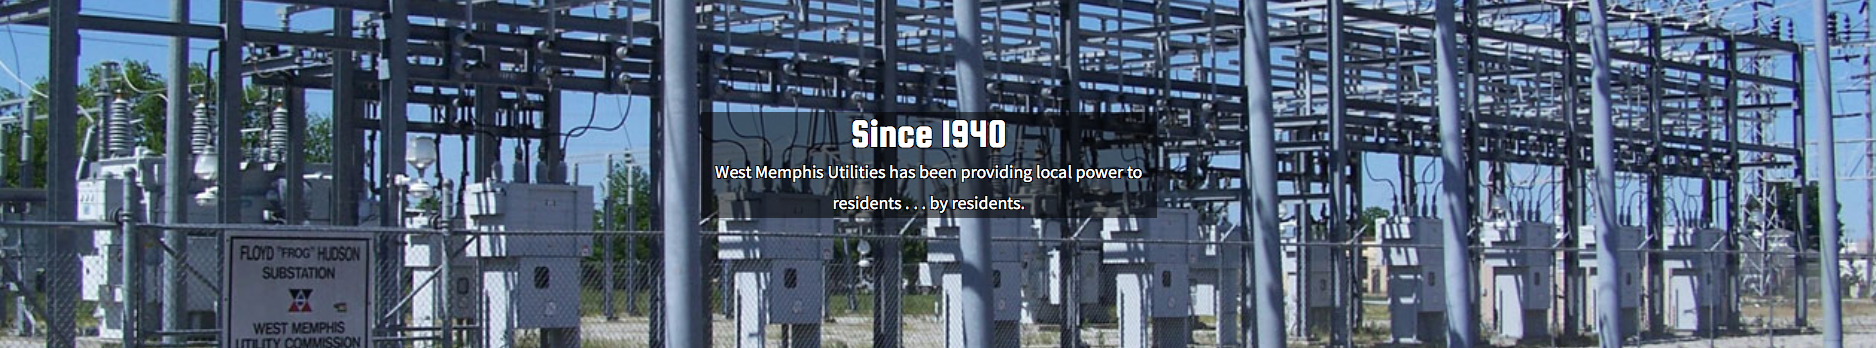 West Memphis Utilities Power Grid